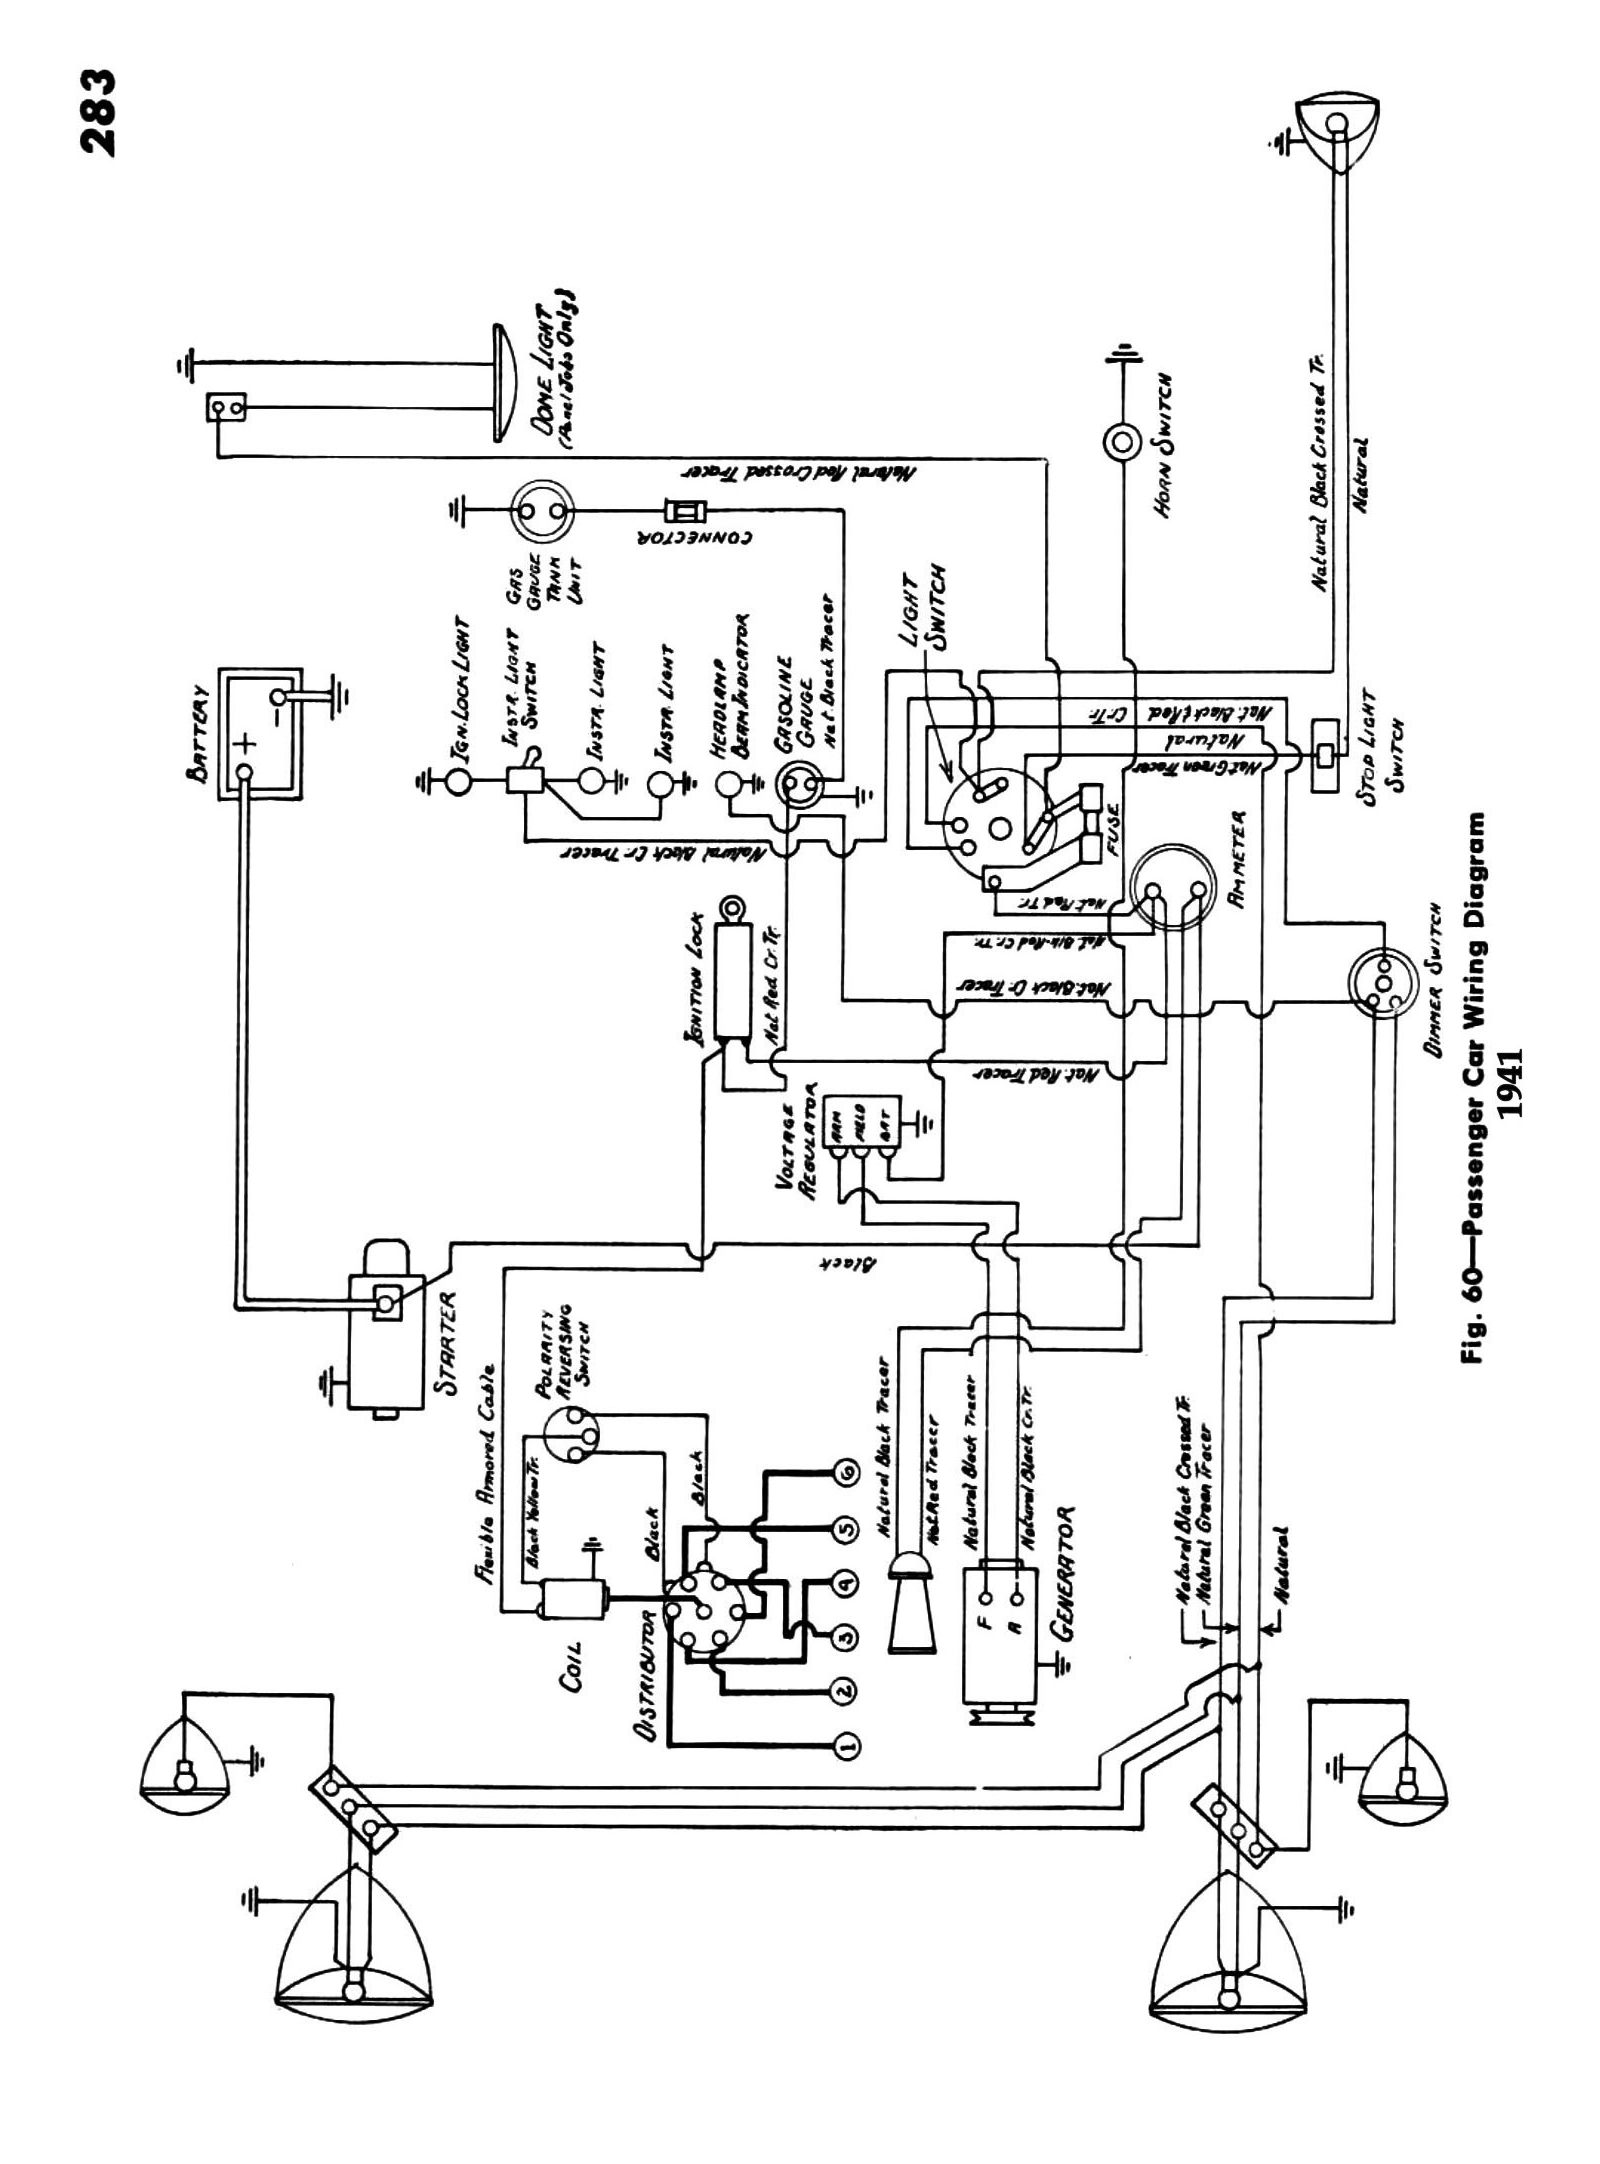 Wiring on 1977 corvette wiring diagram